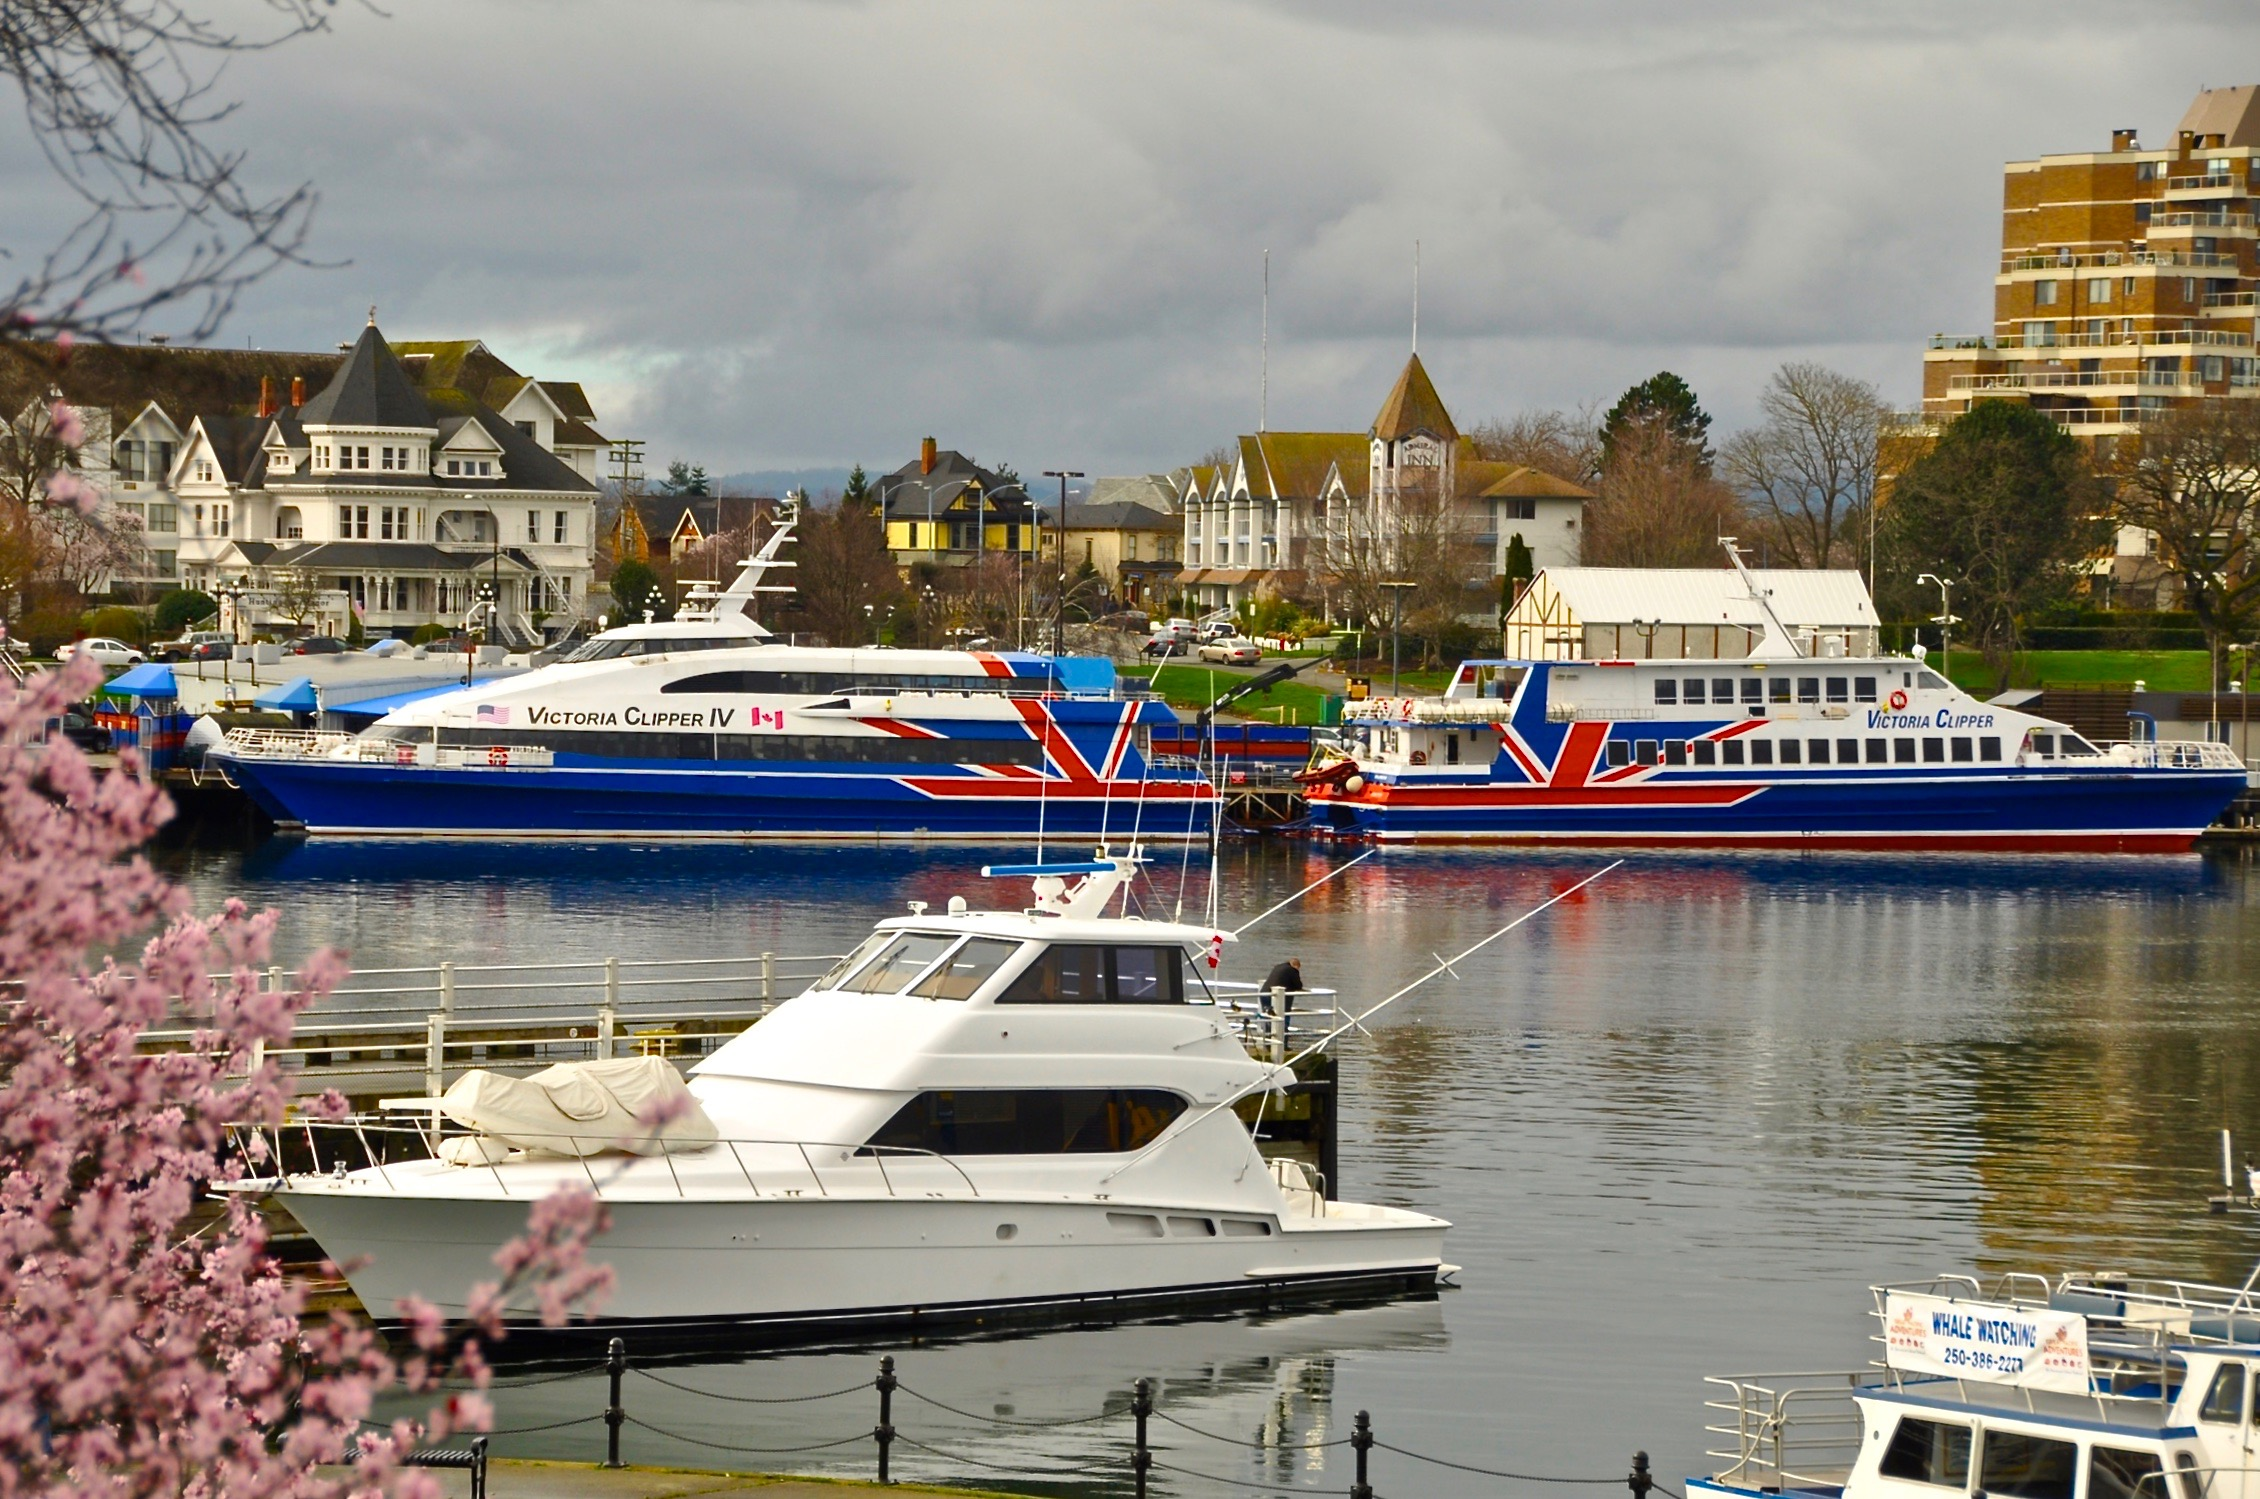 Victoria Clipper Catamarans in Victoria Harbour